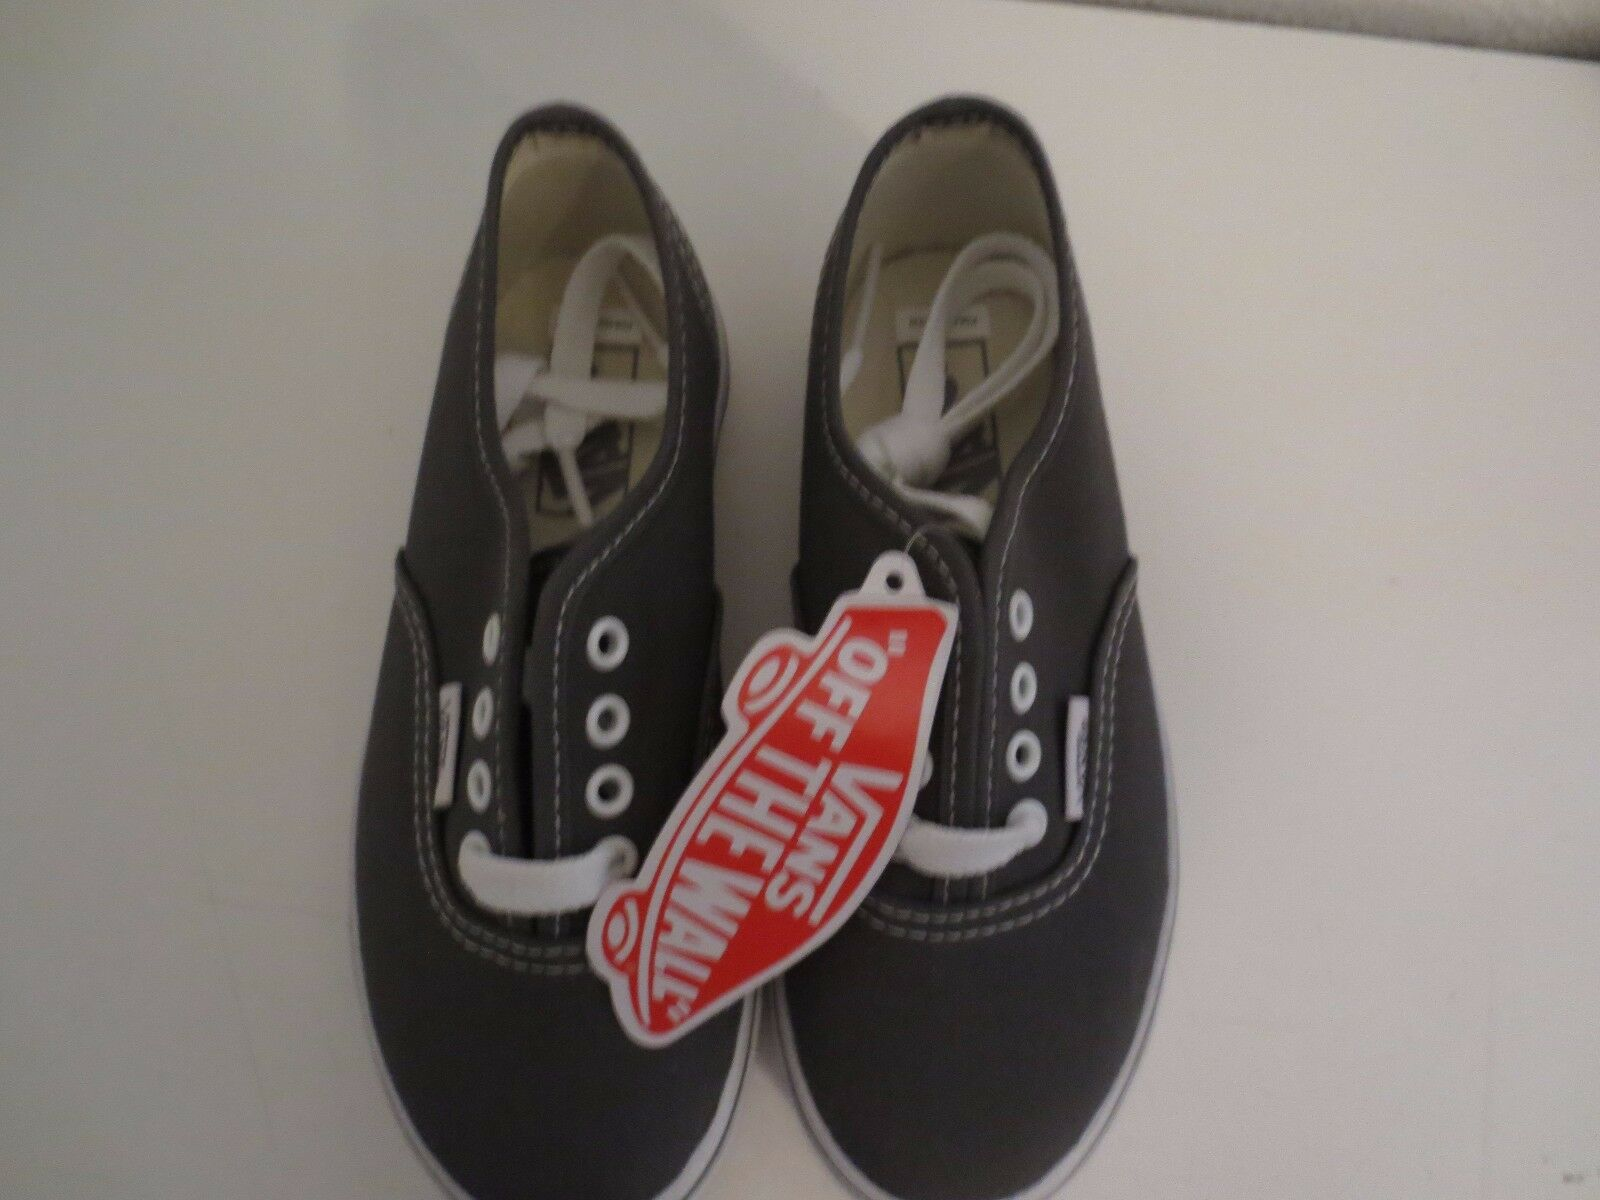 vans off the wall shoes gray